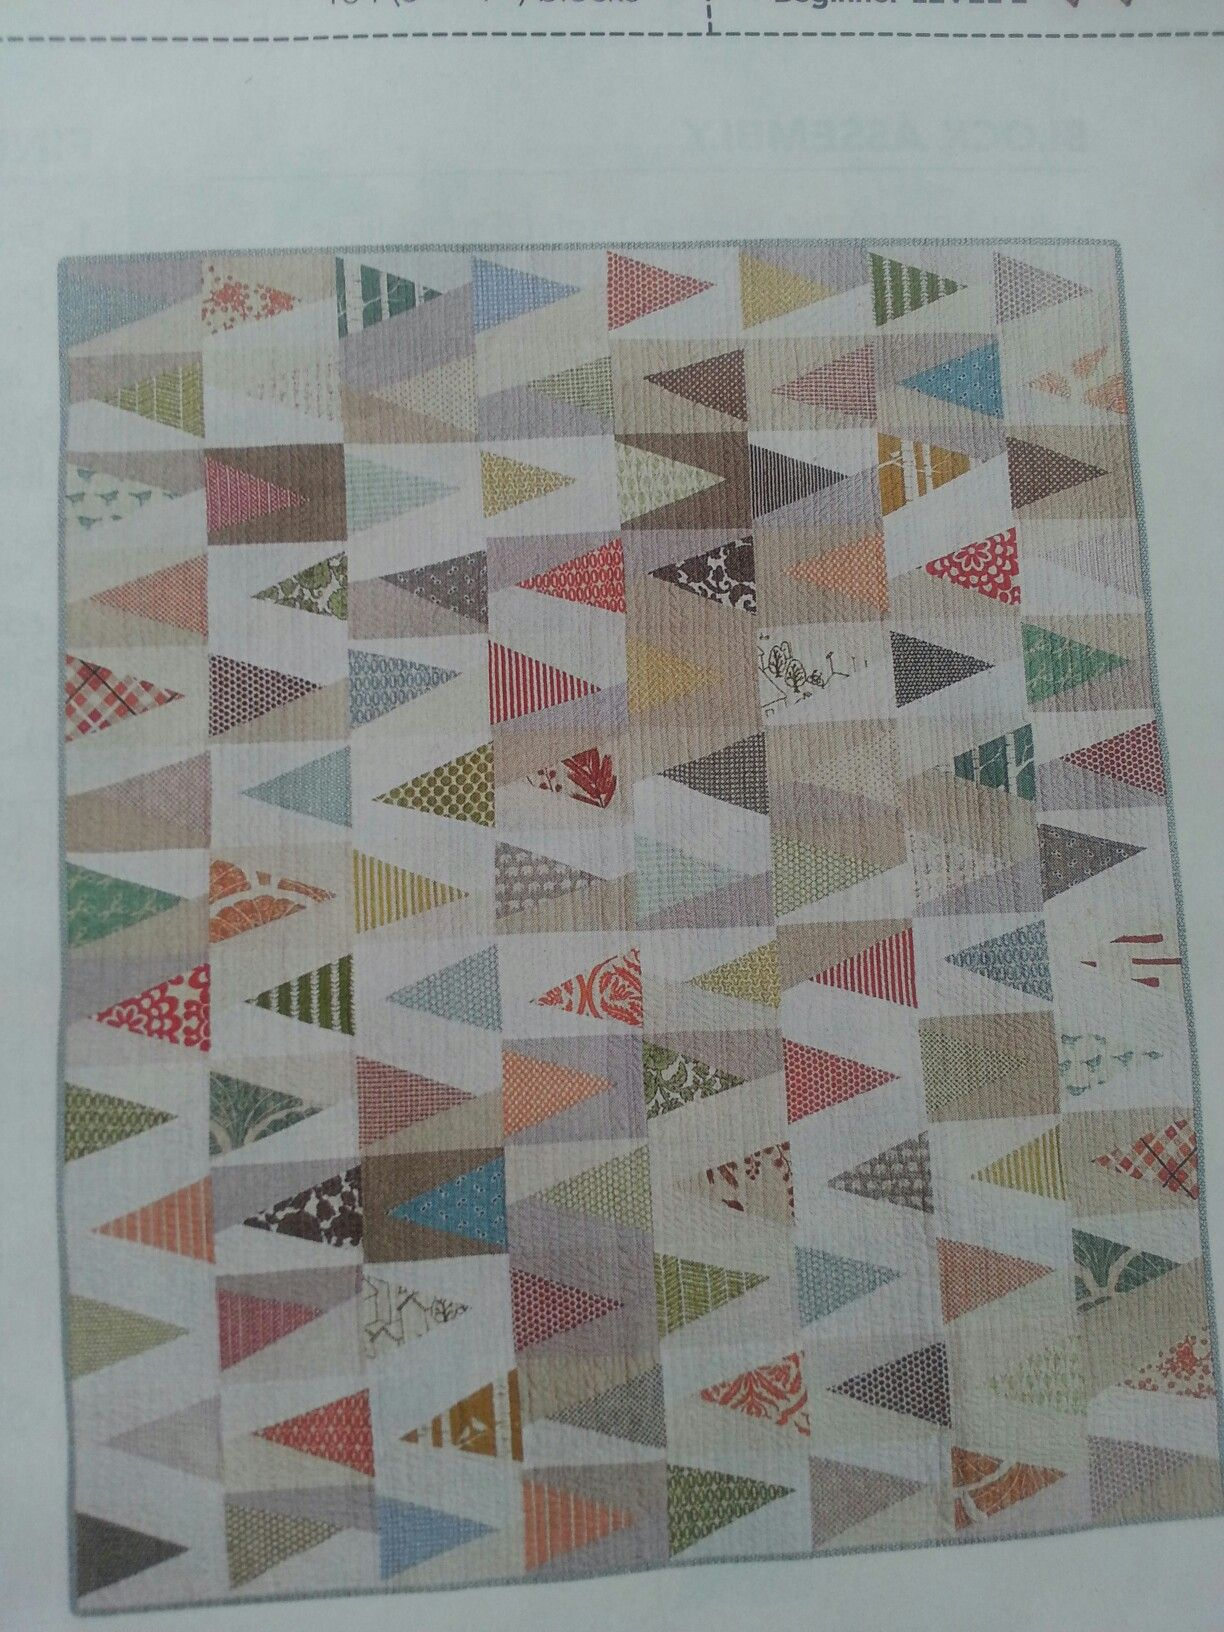 From Fon's & Porter Summer 2016 Triangle Quilts - Trail Marker by Ashley Newcomb - Full quilt - I would just cut this down to the crib size.